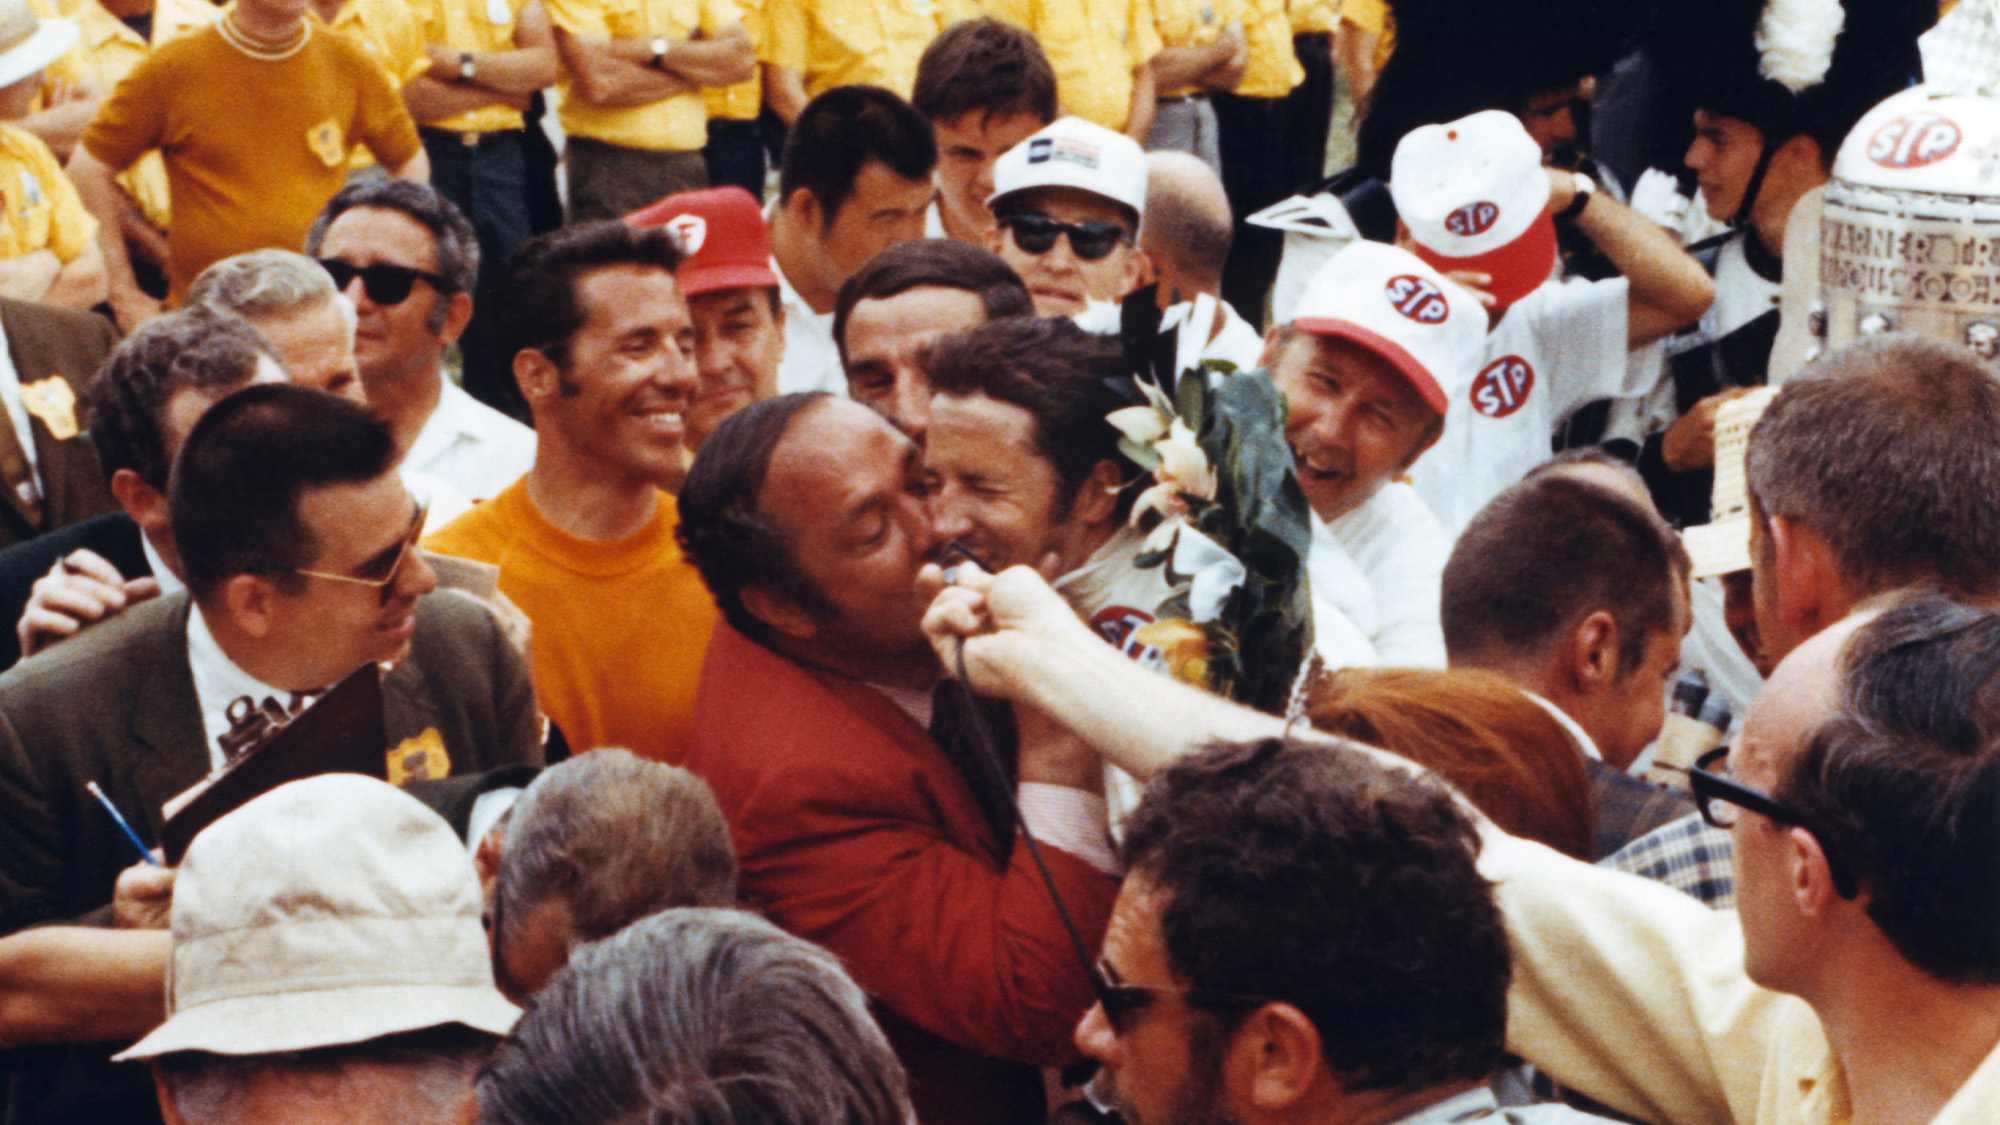 Andy Granatelli kisses Mario Andretti after winning the 1969 Indy 500